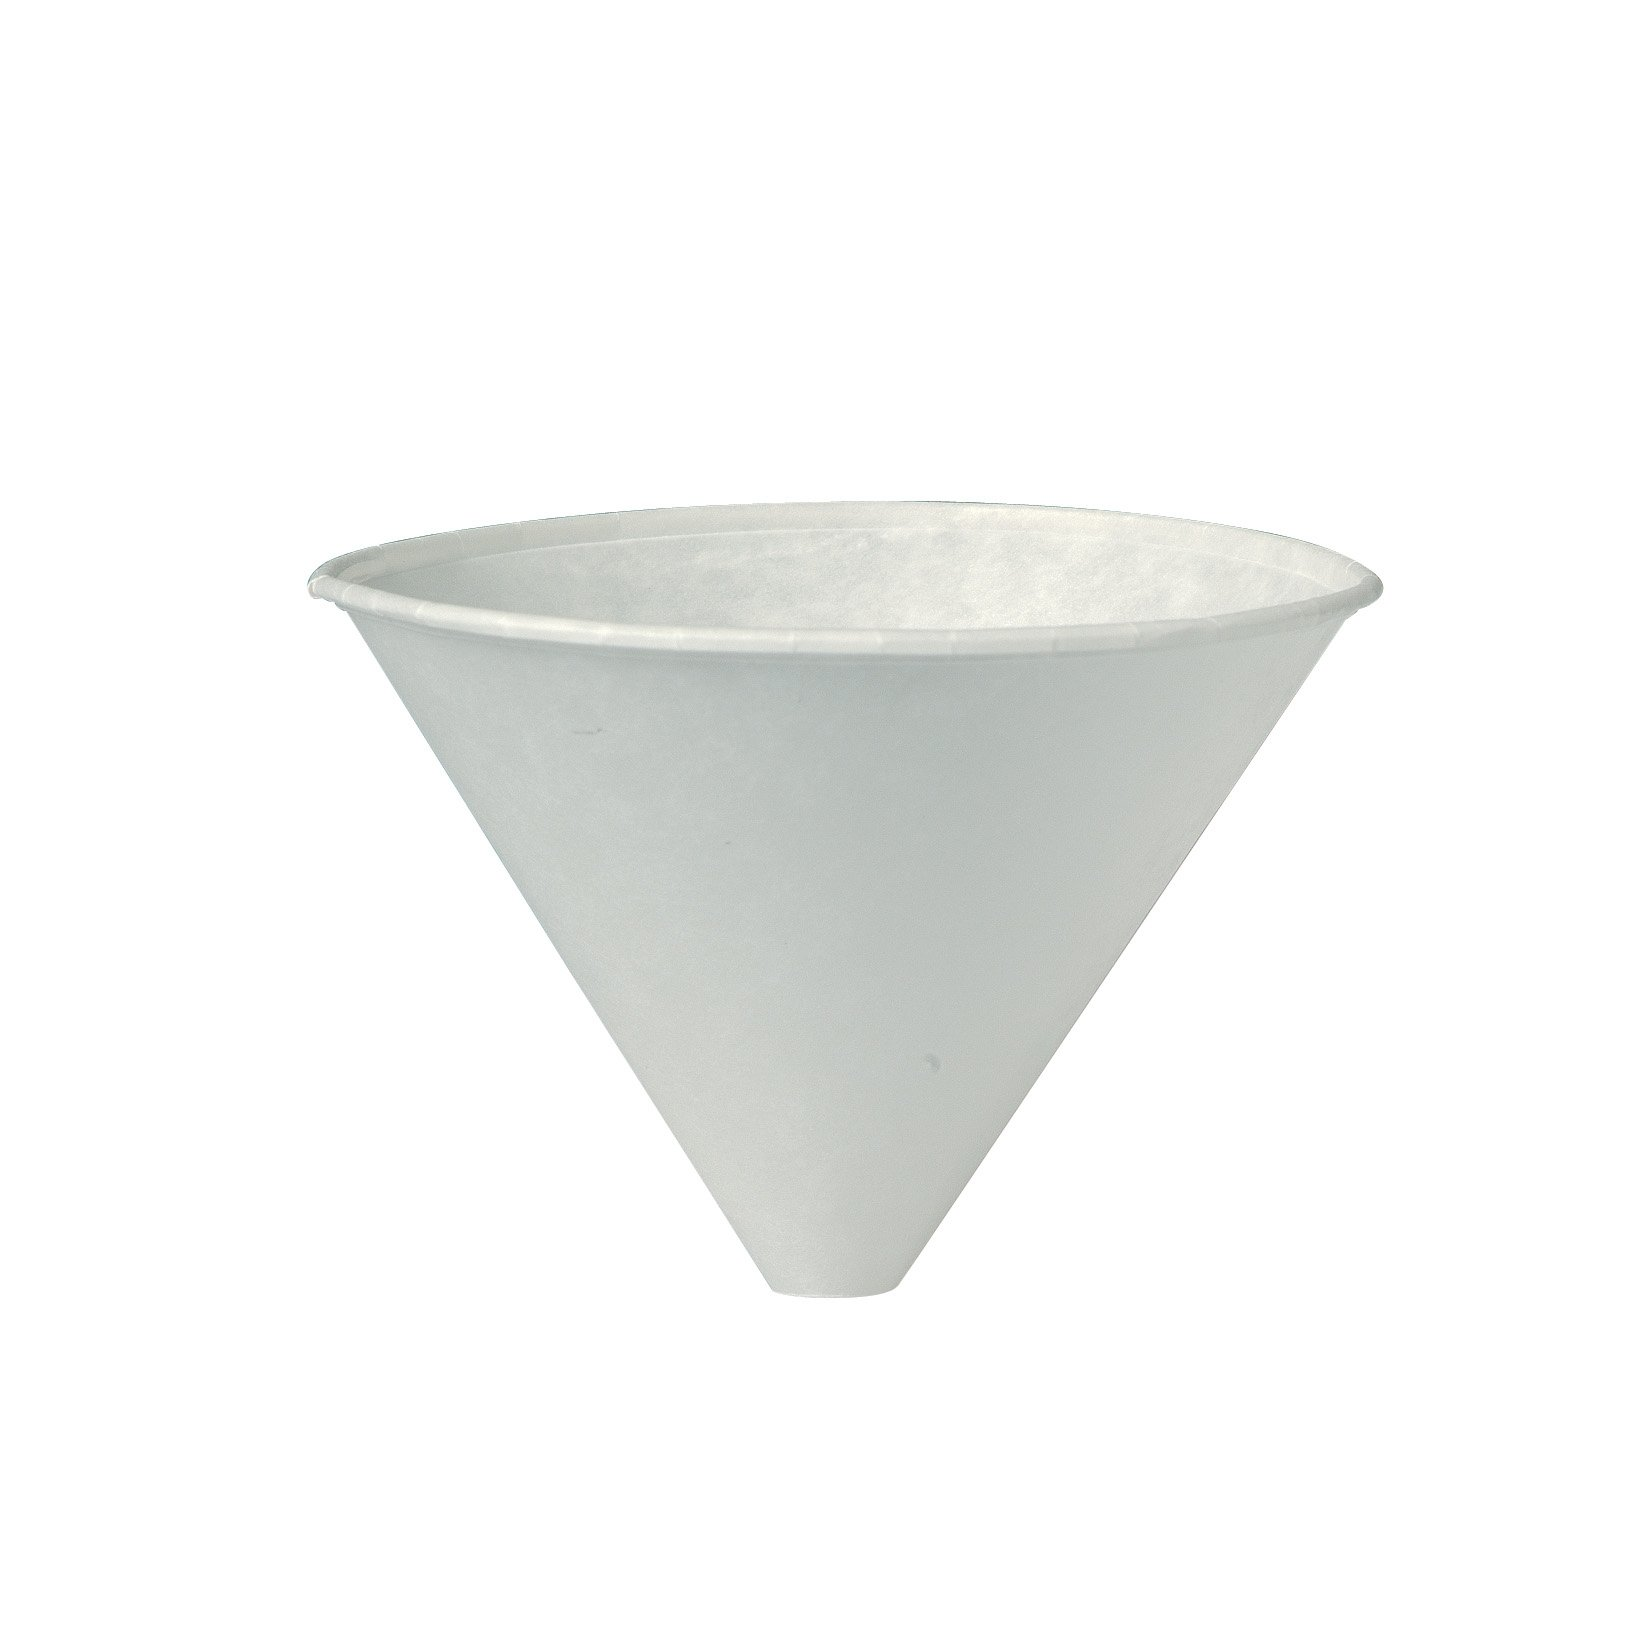 Solo 6SRX-2050 6 oz White Paper Cone Cups (Case of 2500) by Solo Foodservice (Image #2)